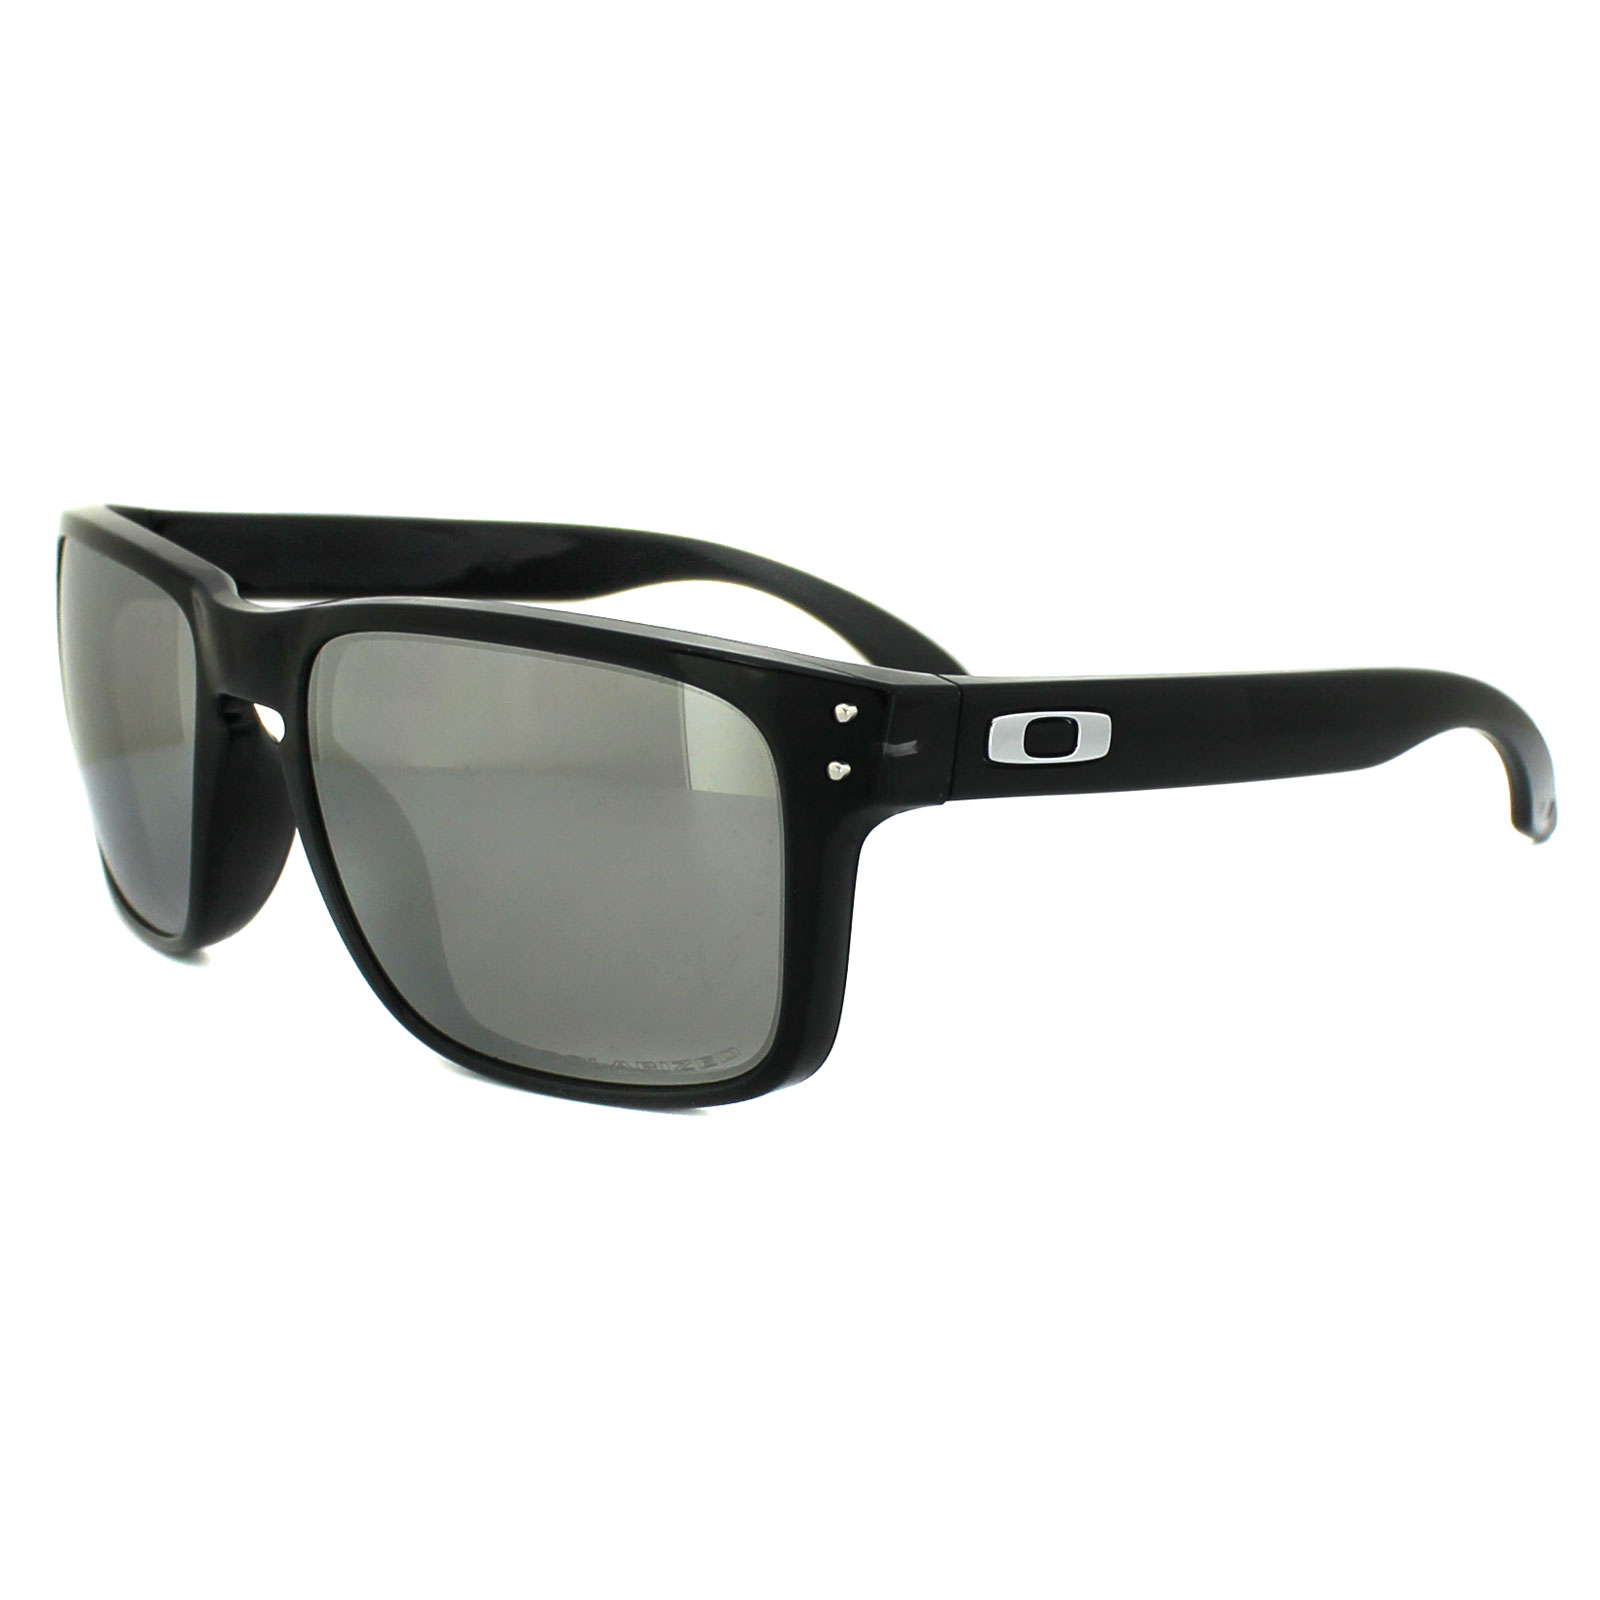 dad524563 Oakley Holbrook Polarized Sunglasses - Polished Black/24k Iridium ...